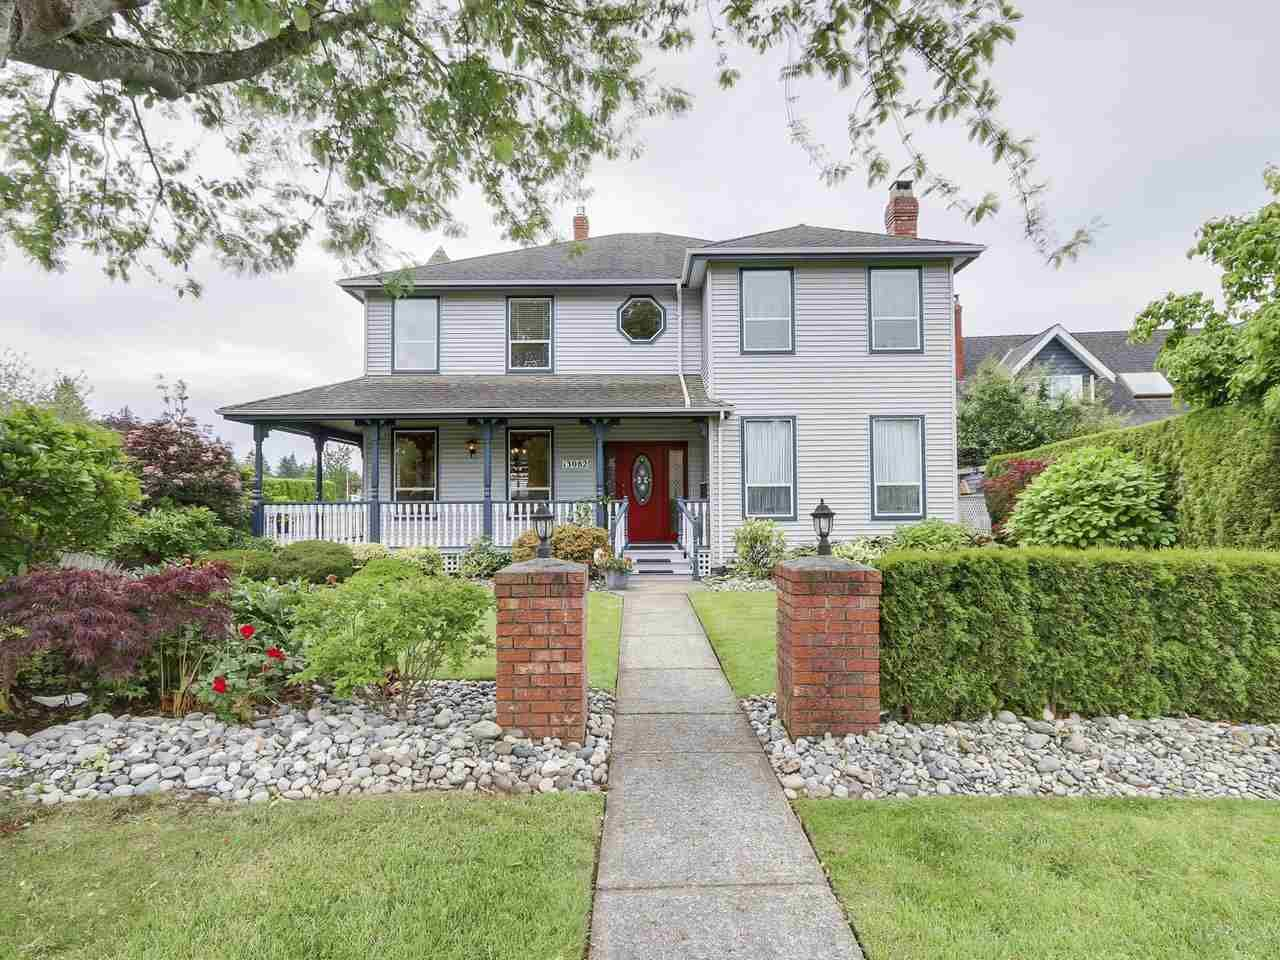 """Main Photo: 13082 19 Avenue in Surrey: Crescent Bch Ocean Pk. House for sale in """"HAMPSTED HEATH"""" (South Surrey White Rock)  : MLS®# R2180899"""